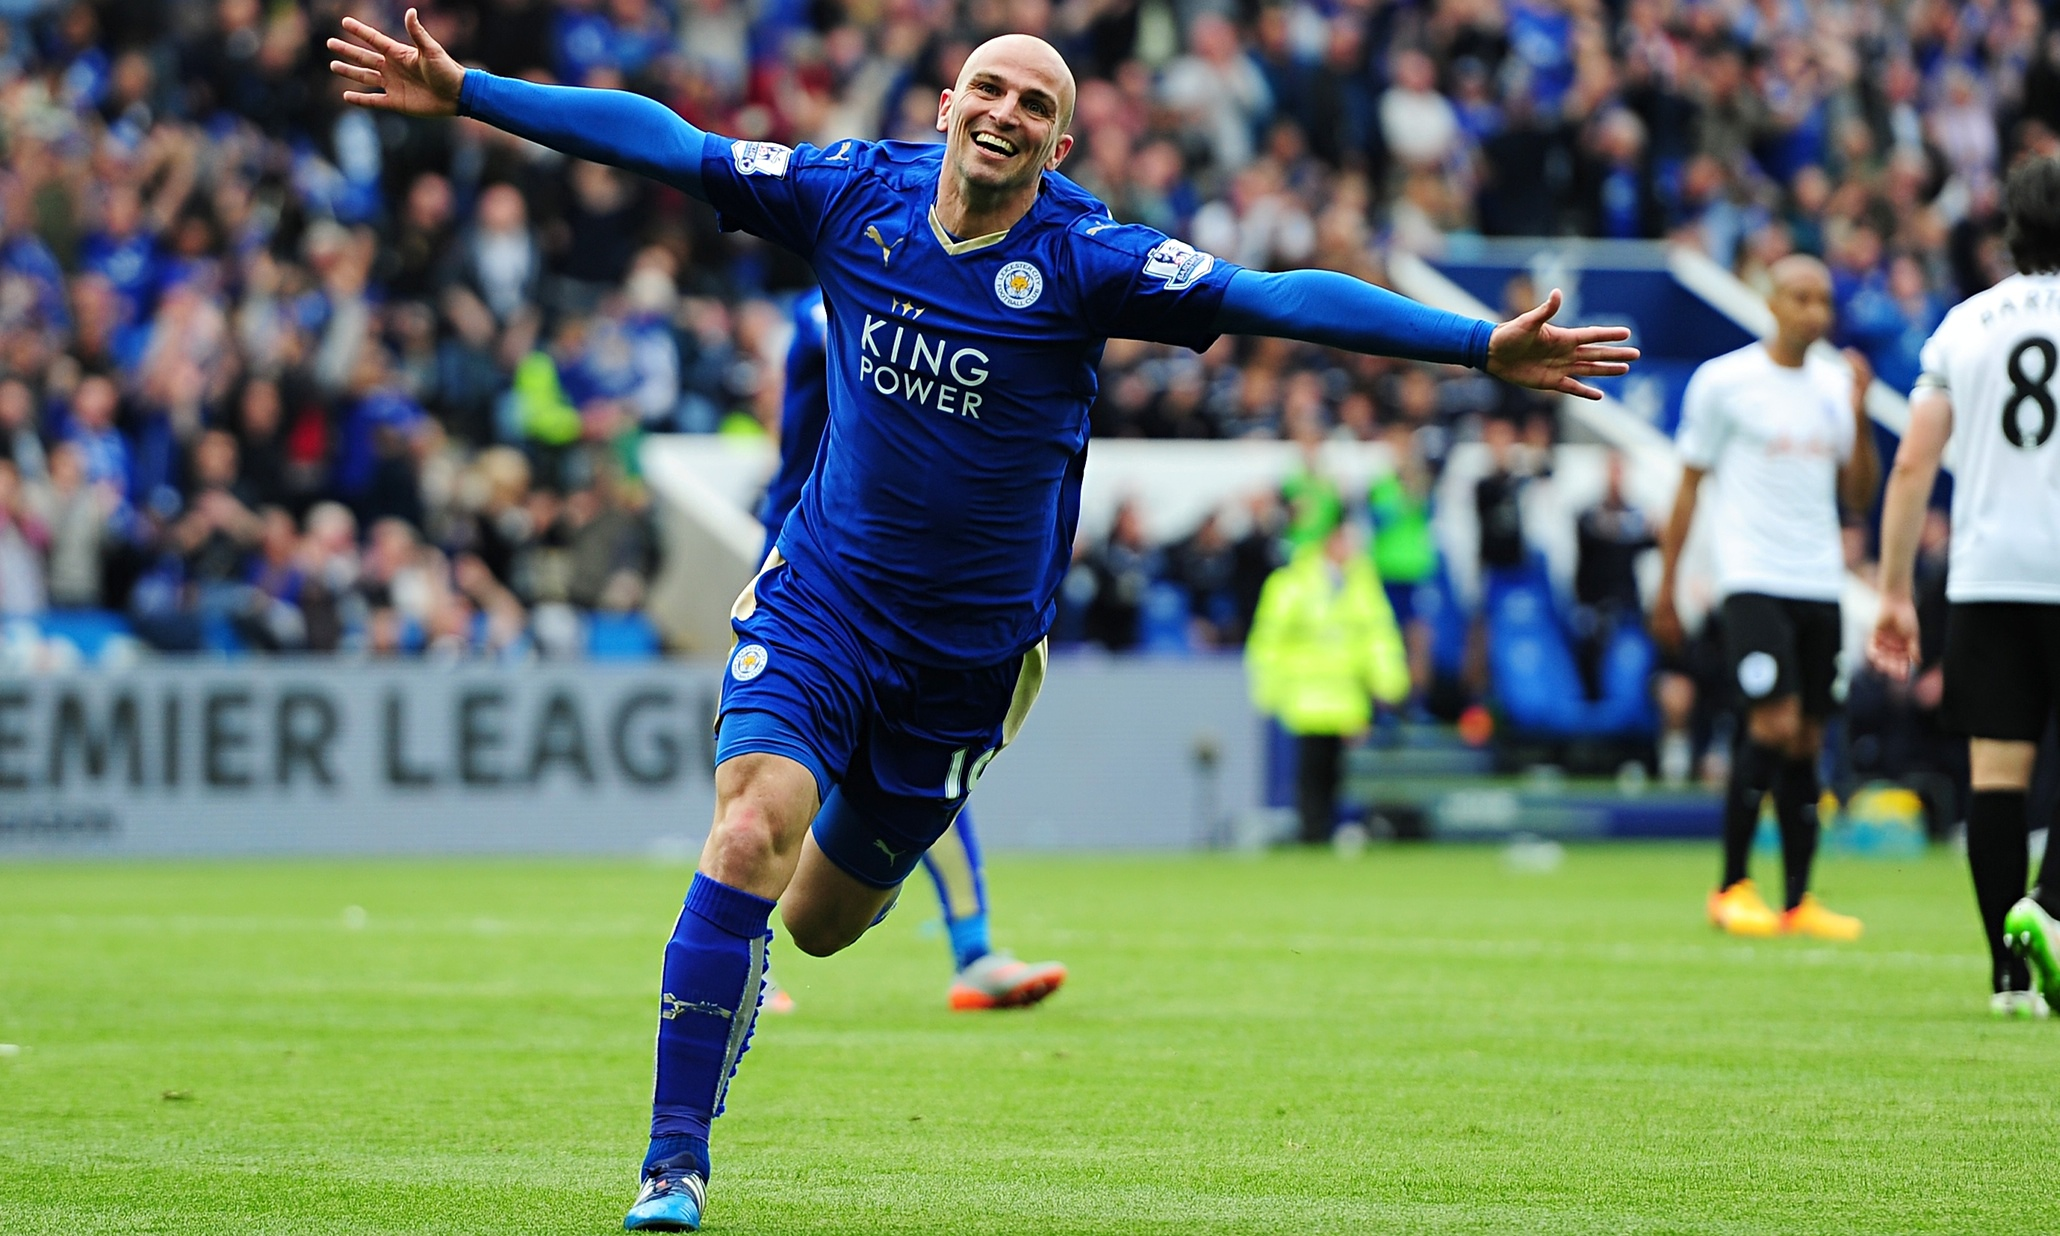 leicester city - photo #15